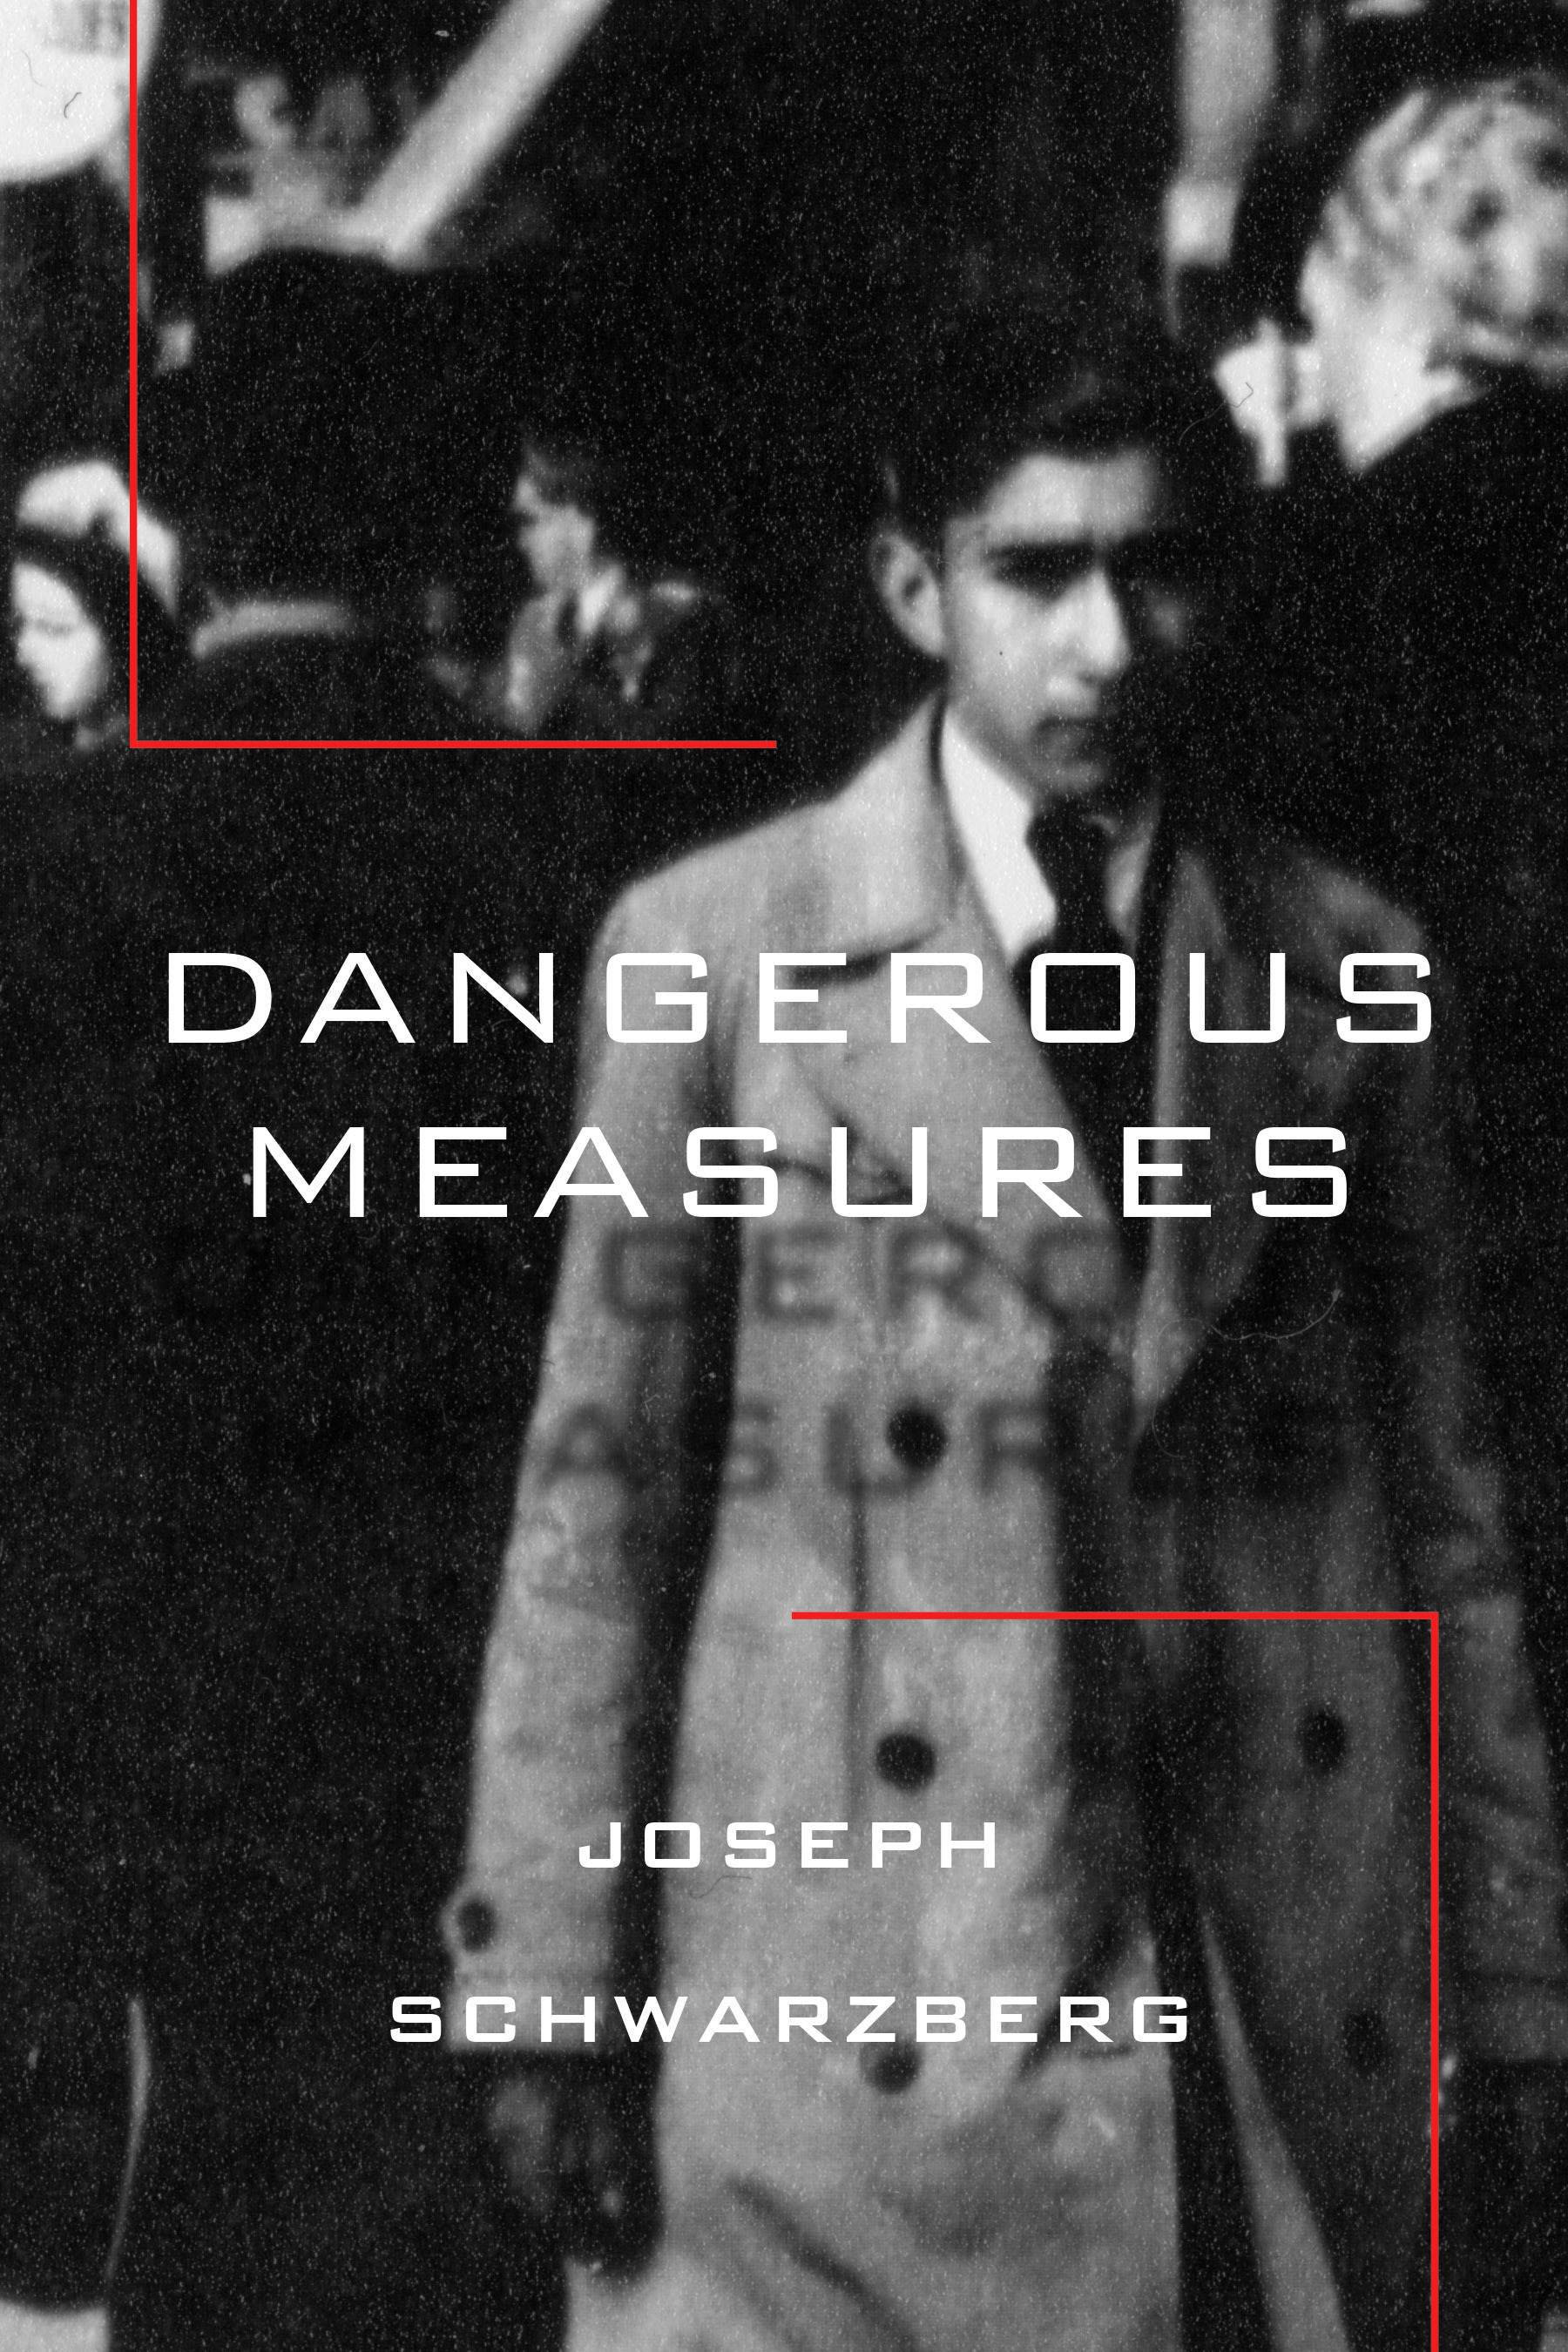 Dangerous Measures (Traduction française à venir) book cover